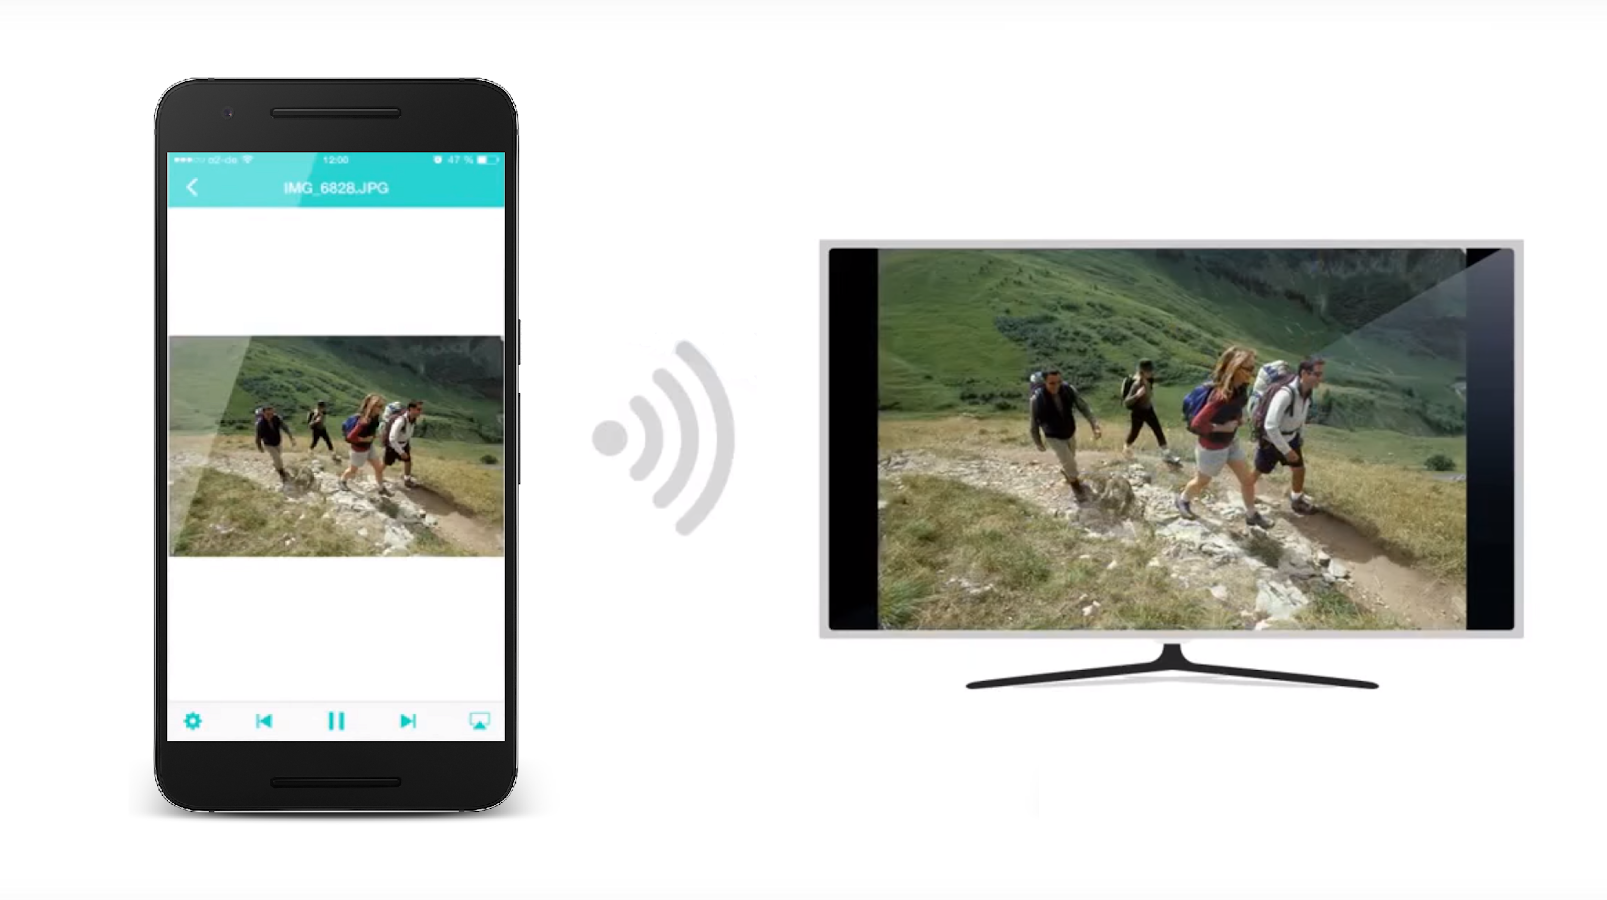 nero streaming player connect phone and smart tv android apps